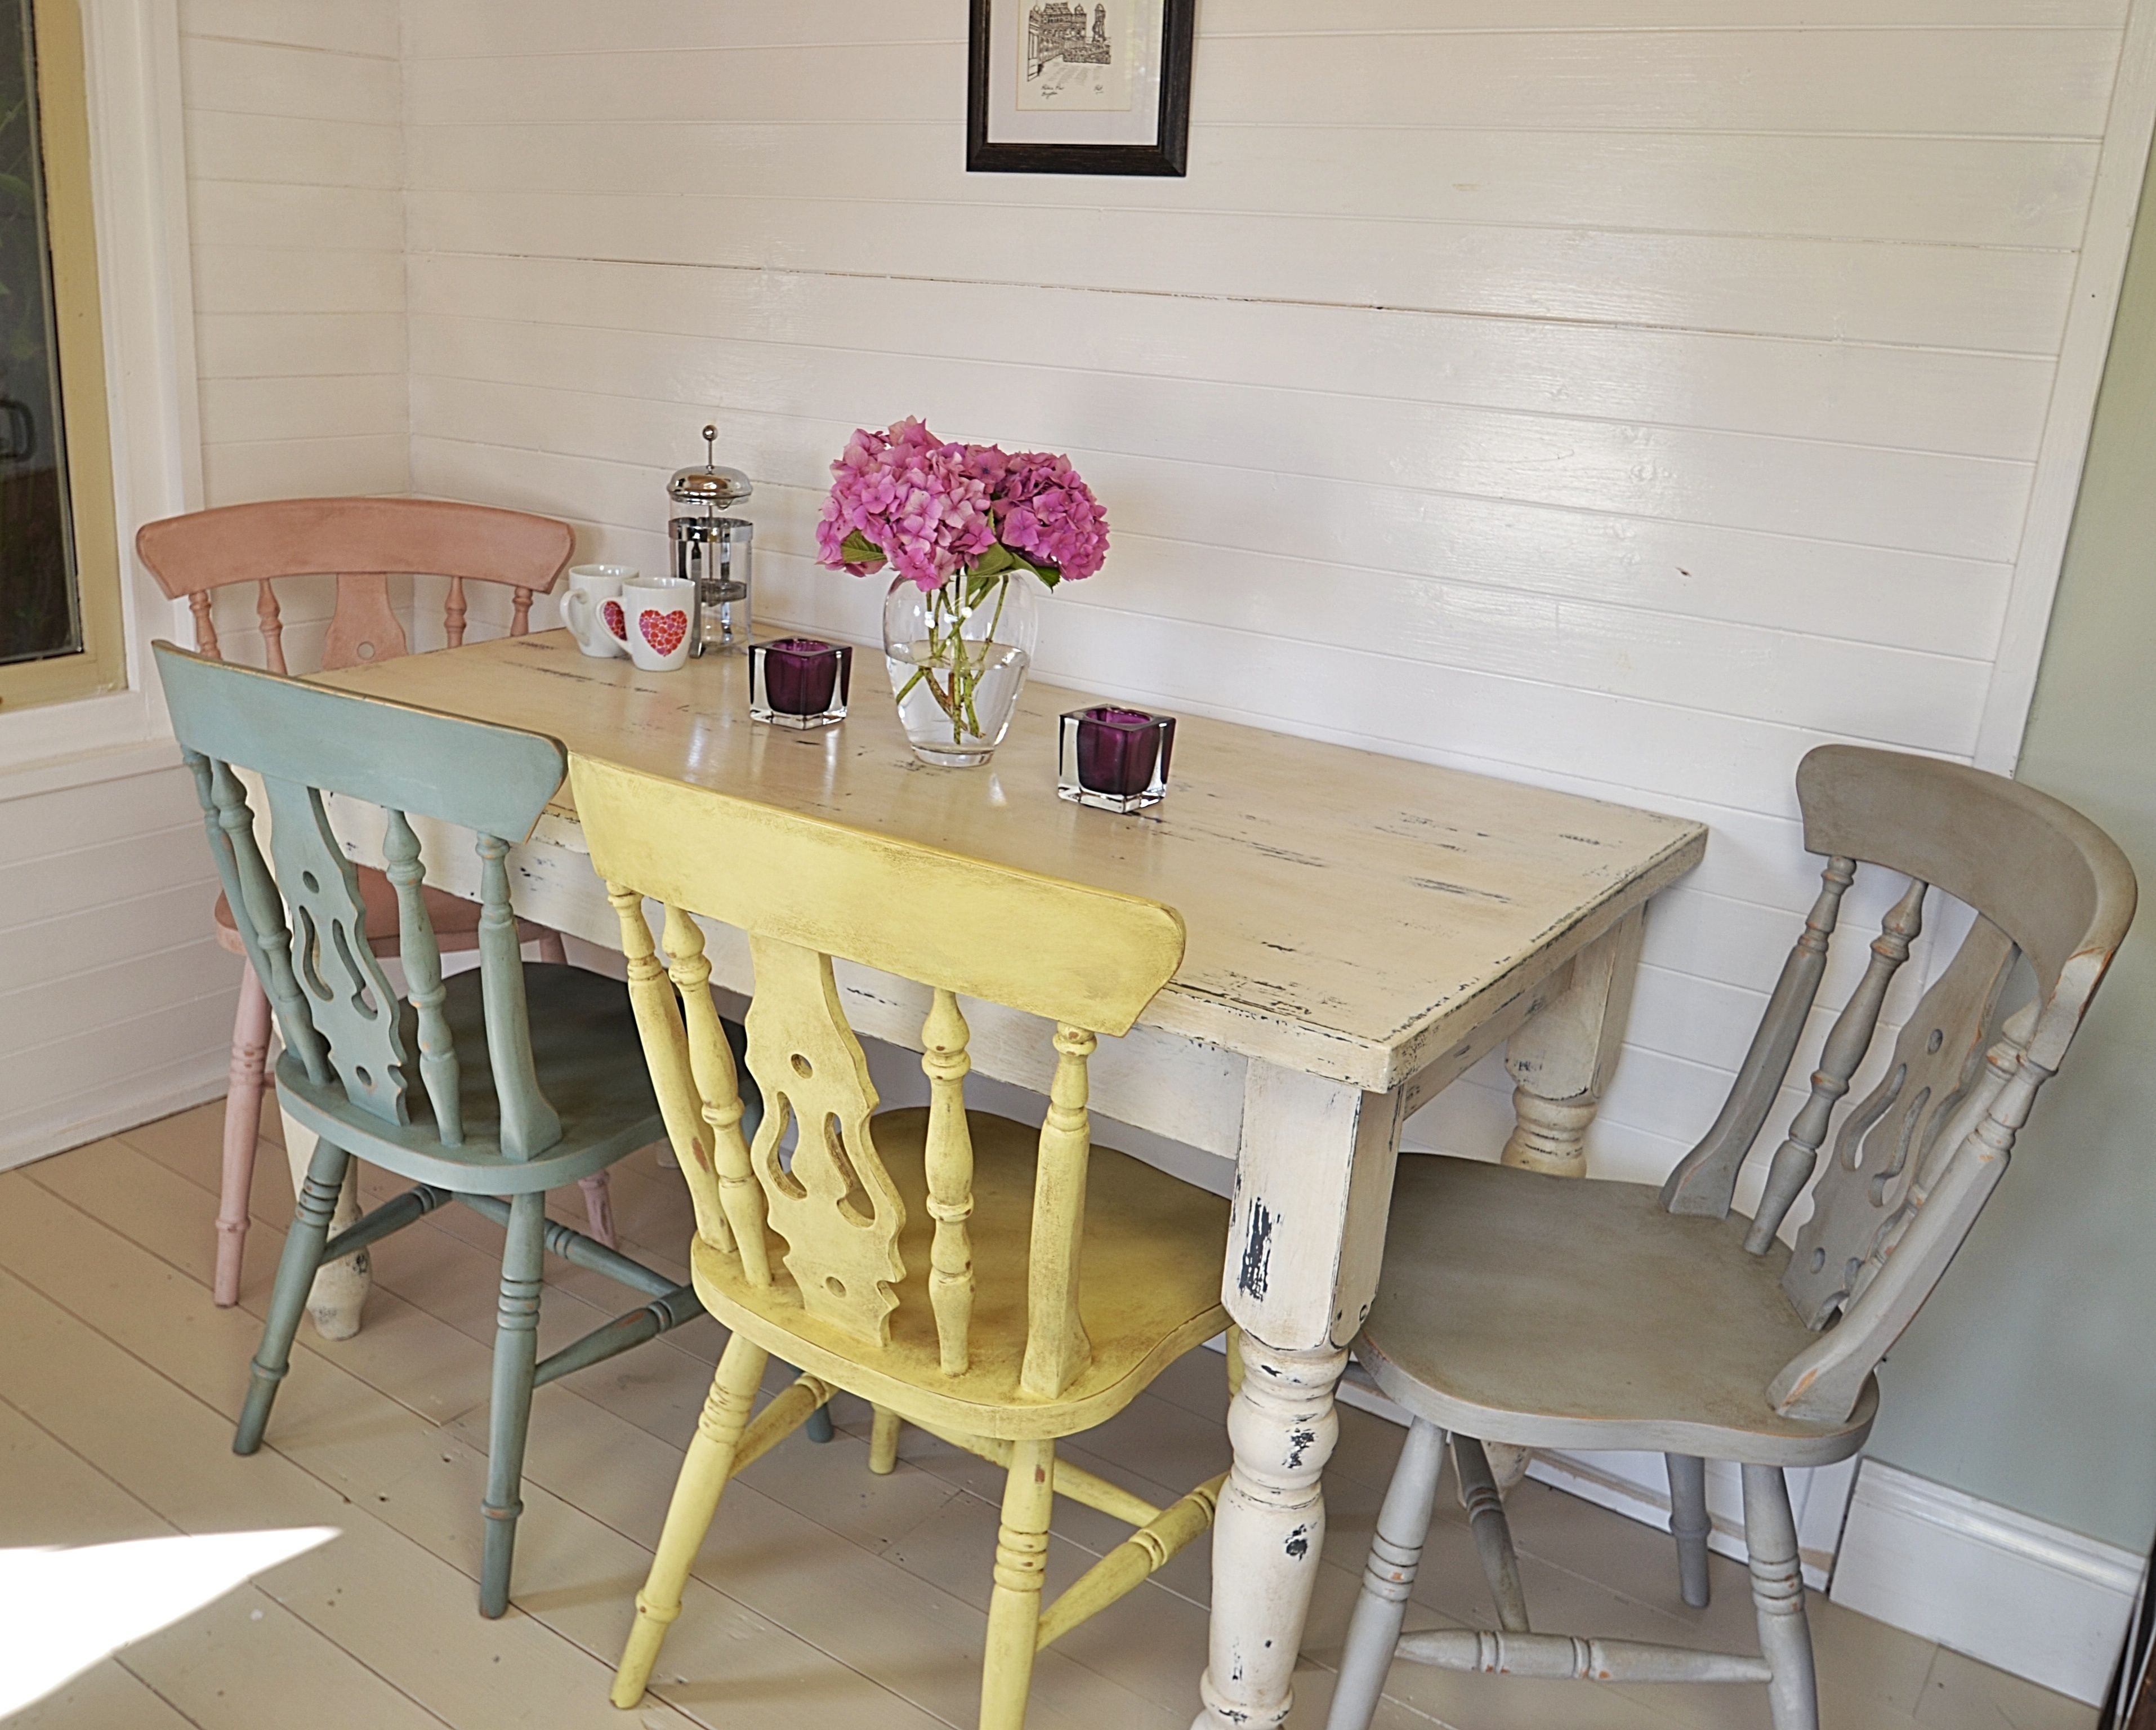 grey kitchen chairs CasaGiardino This fabulous dining set has four pastel chairs painted in Duck Egg